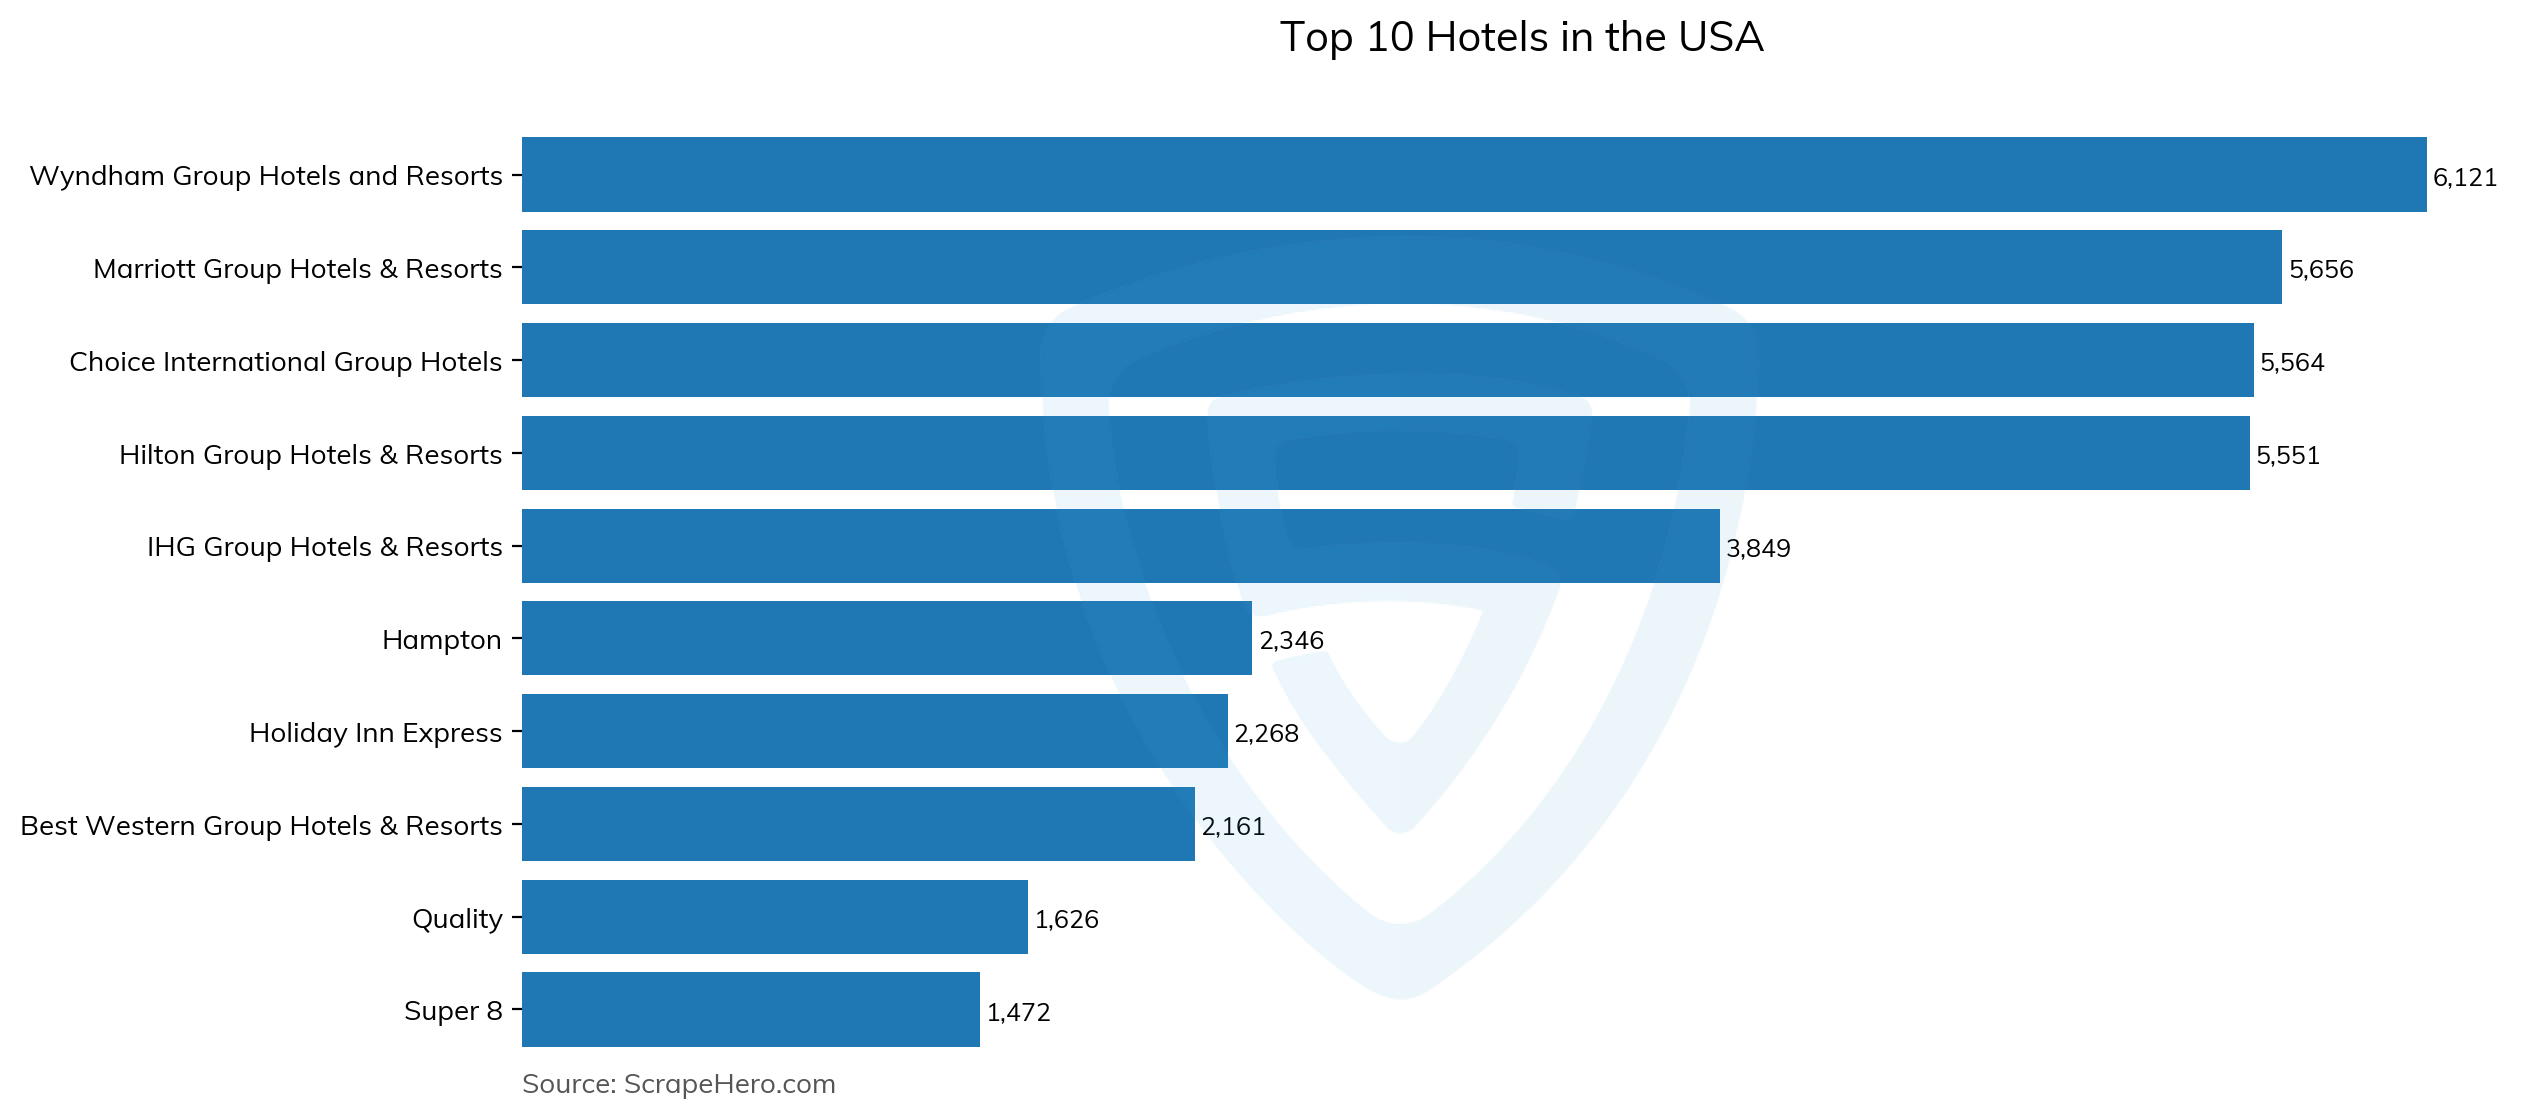 Bar chart of top 10 hotels in the usa in 2021